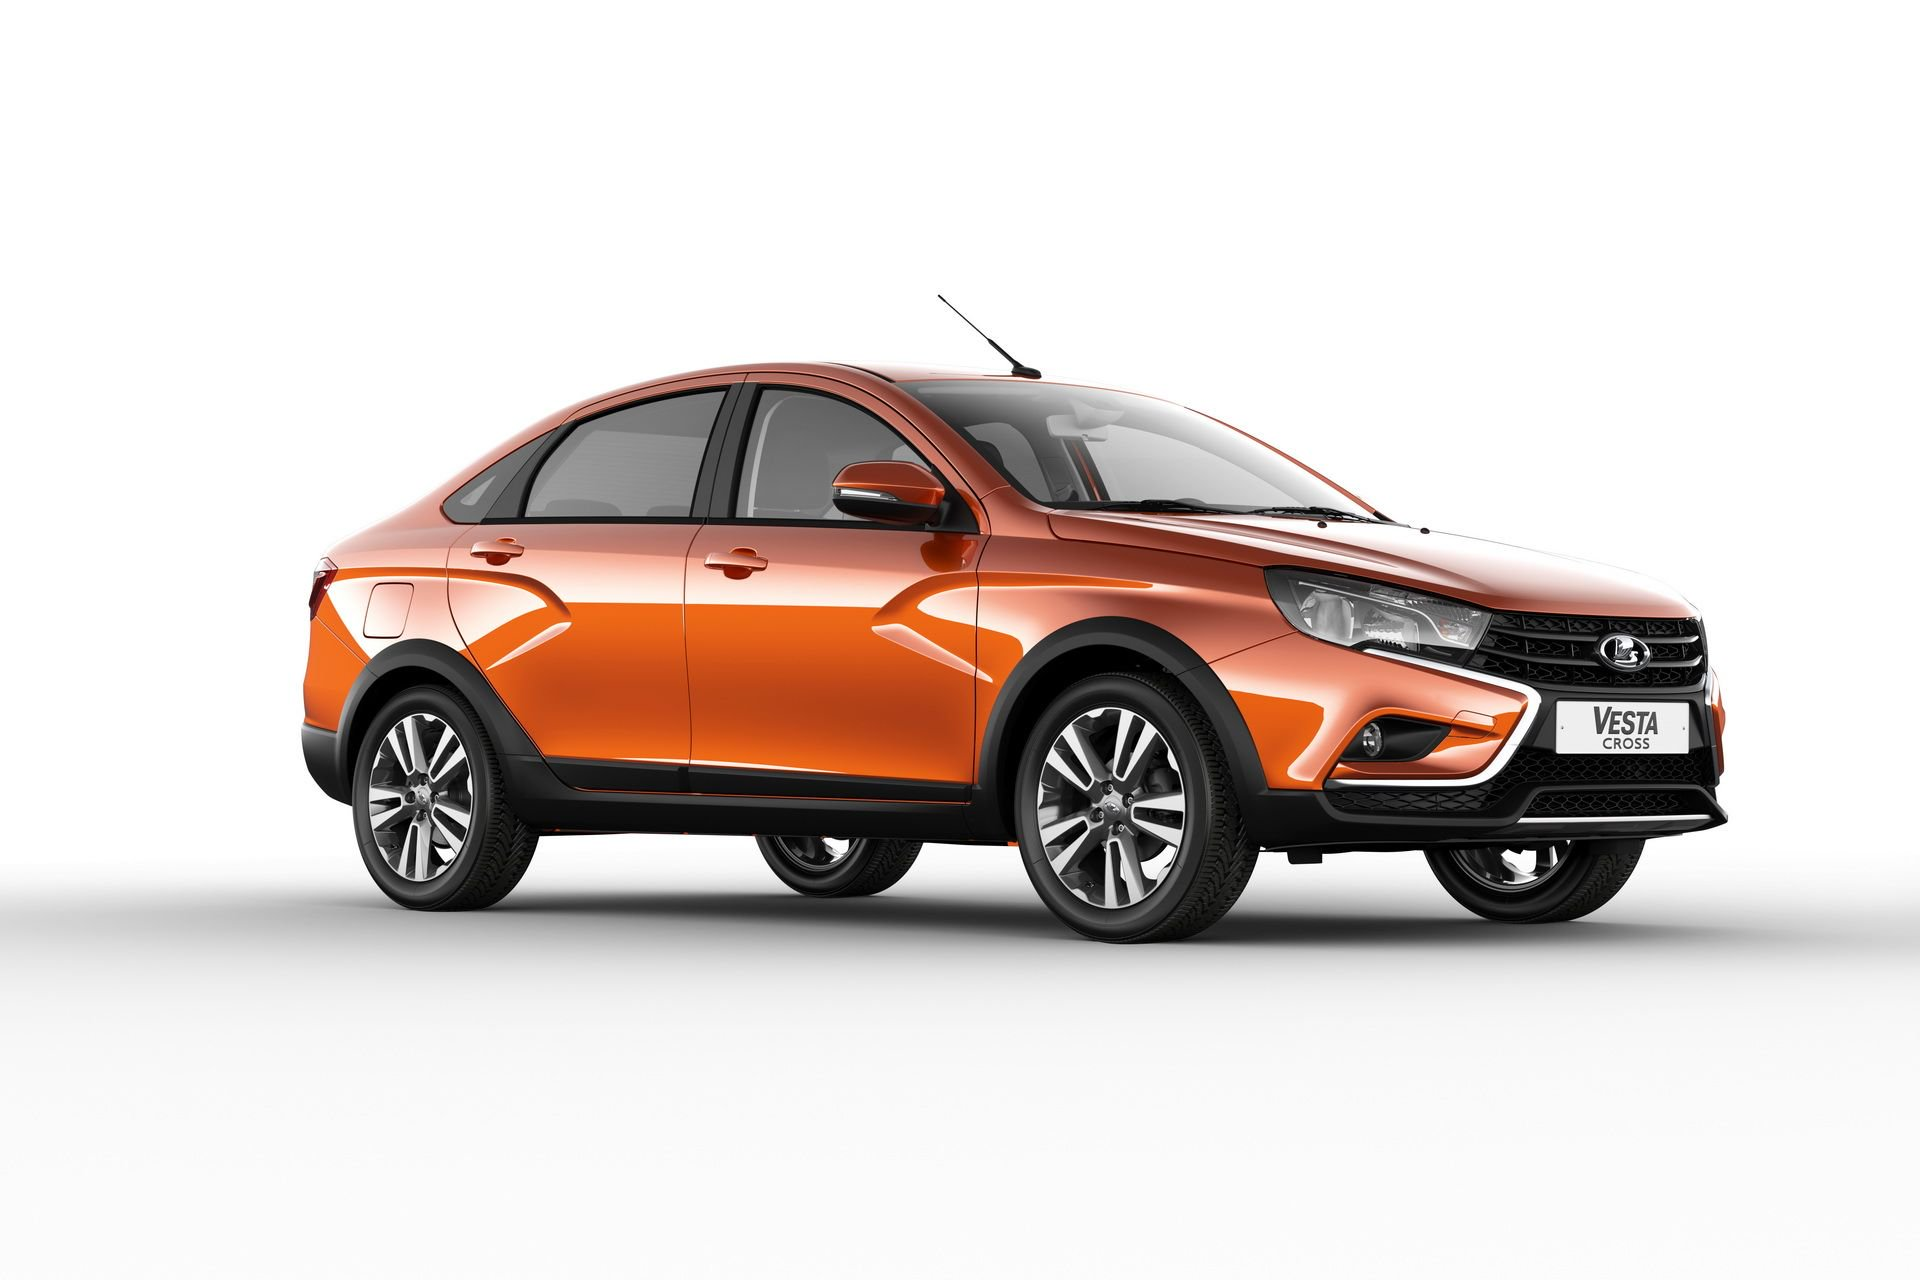 Lada_Vesta_Cross_Sedan_0004